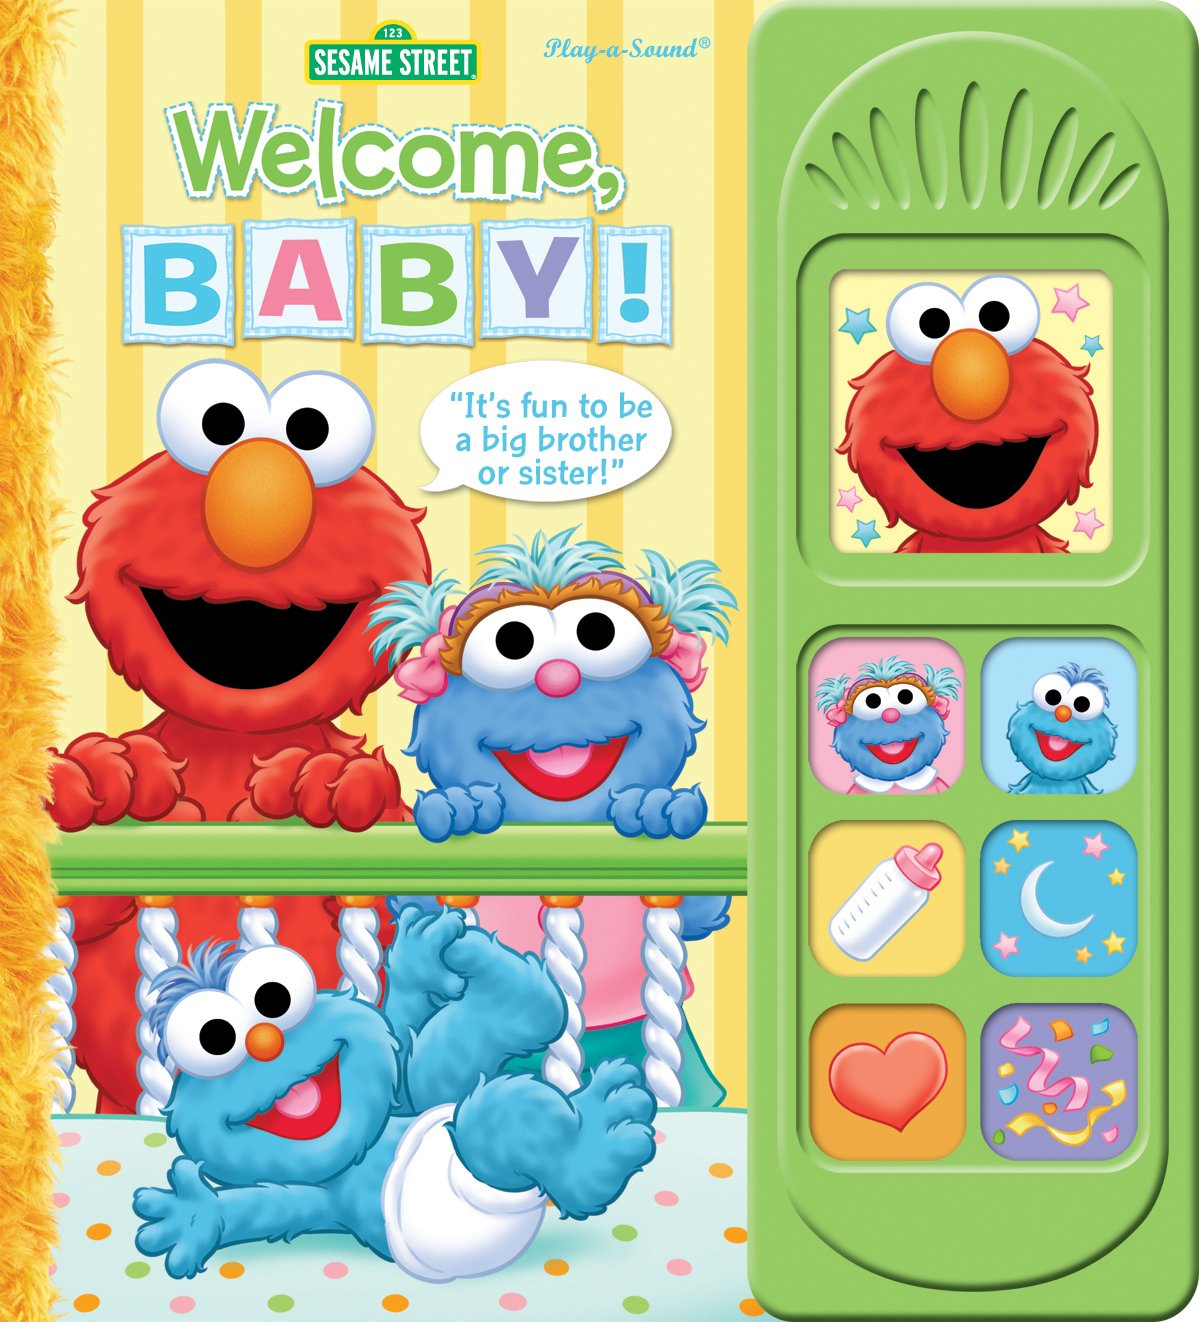 Baby Sesame Street Pictures